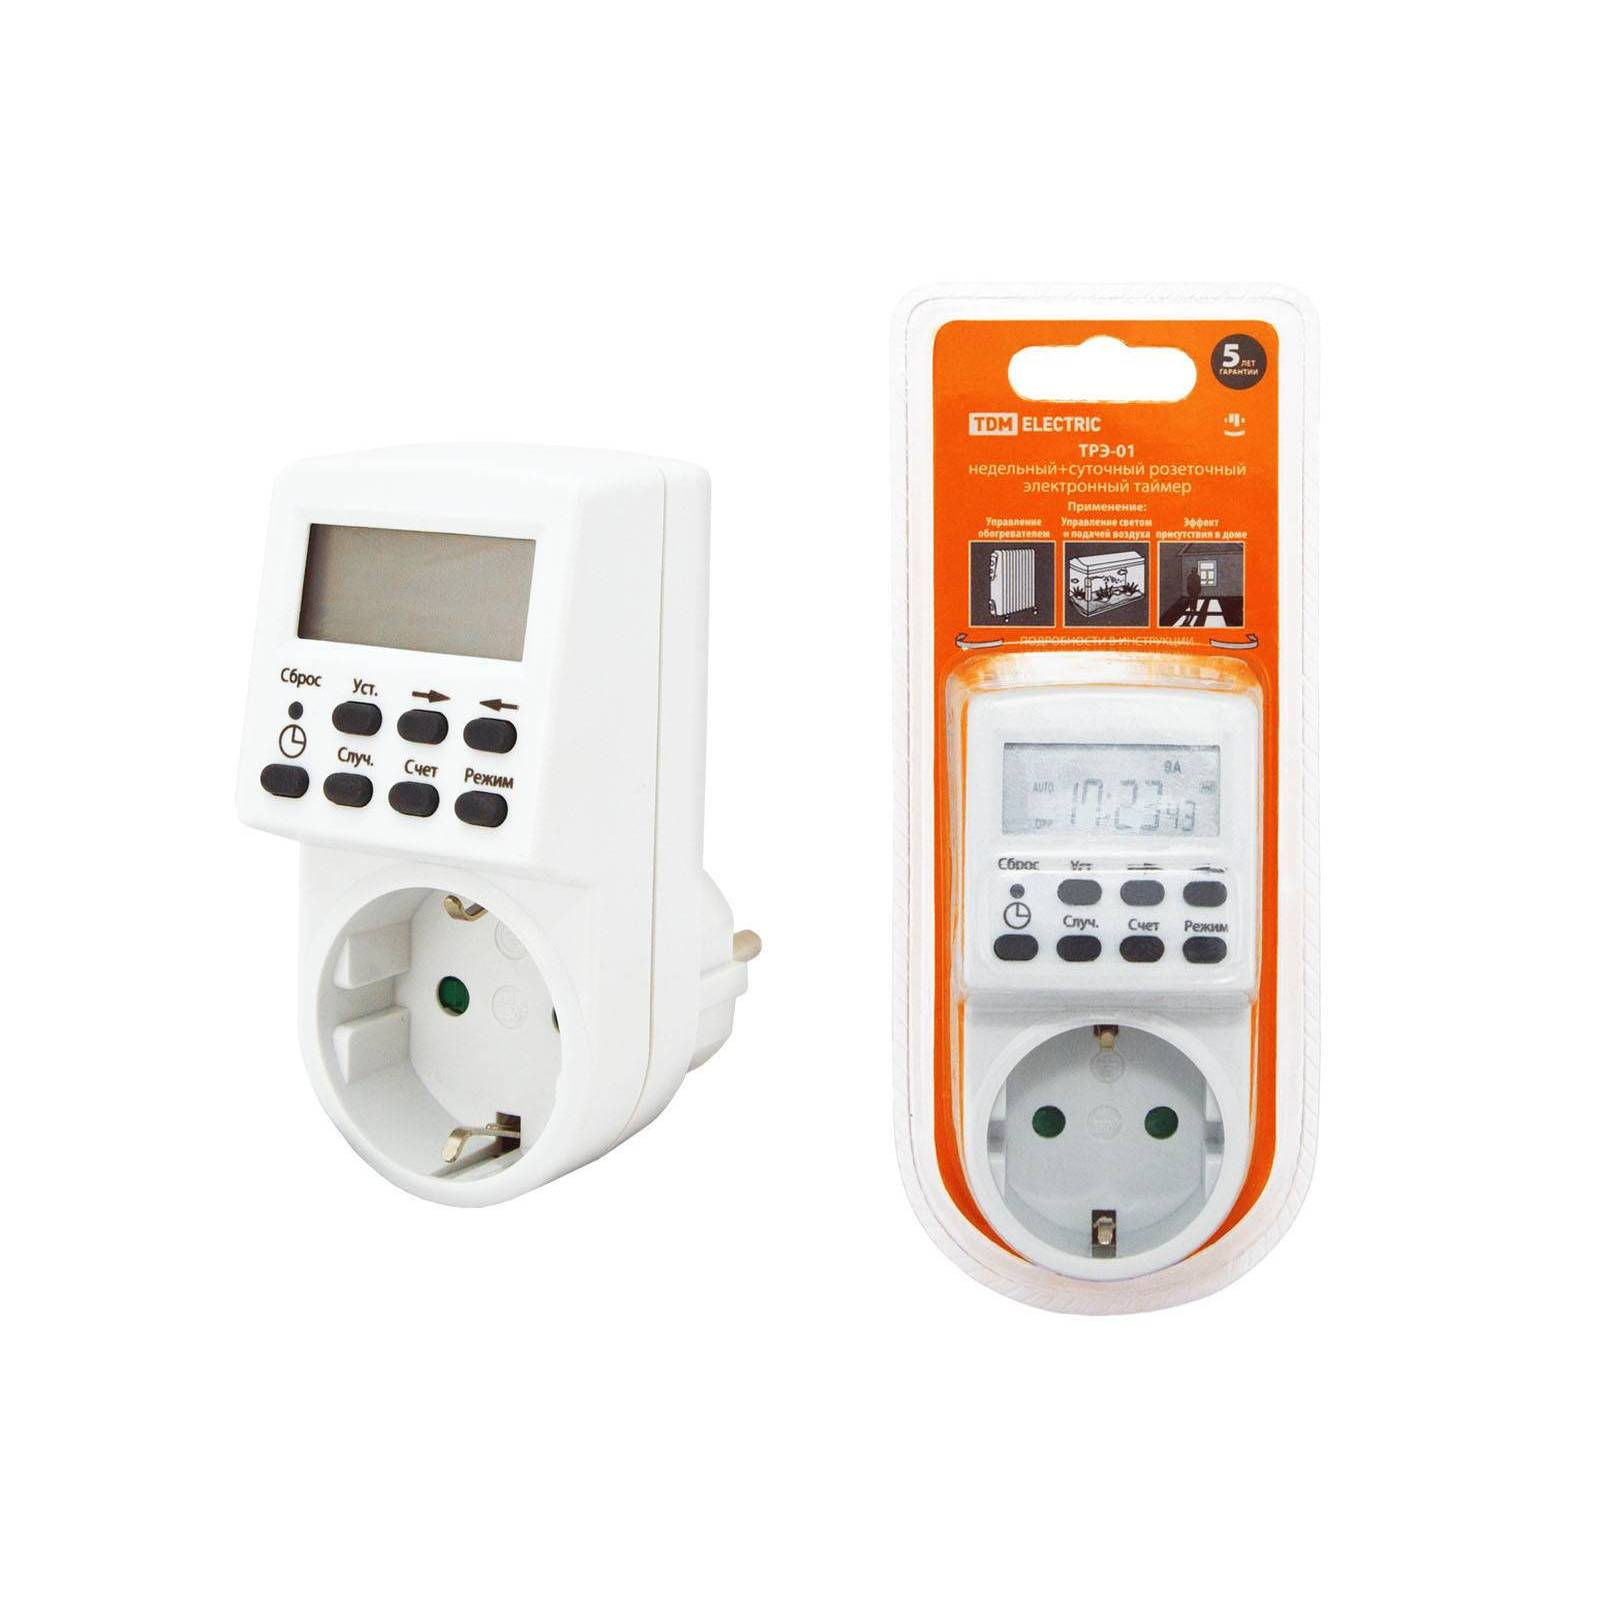 Outlet Timer трэ-01-1мин/7дн-20on/off-16a TDM Sq1506-0002